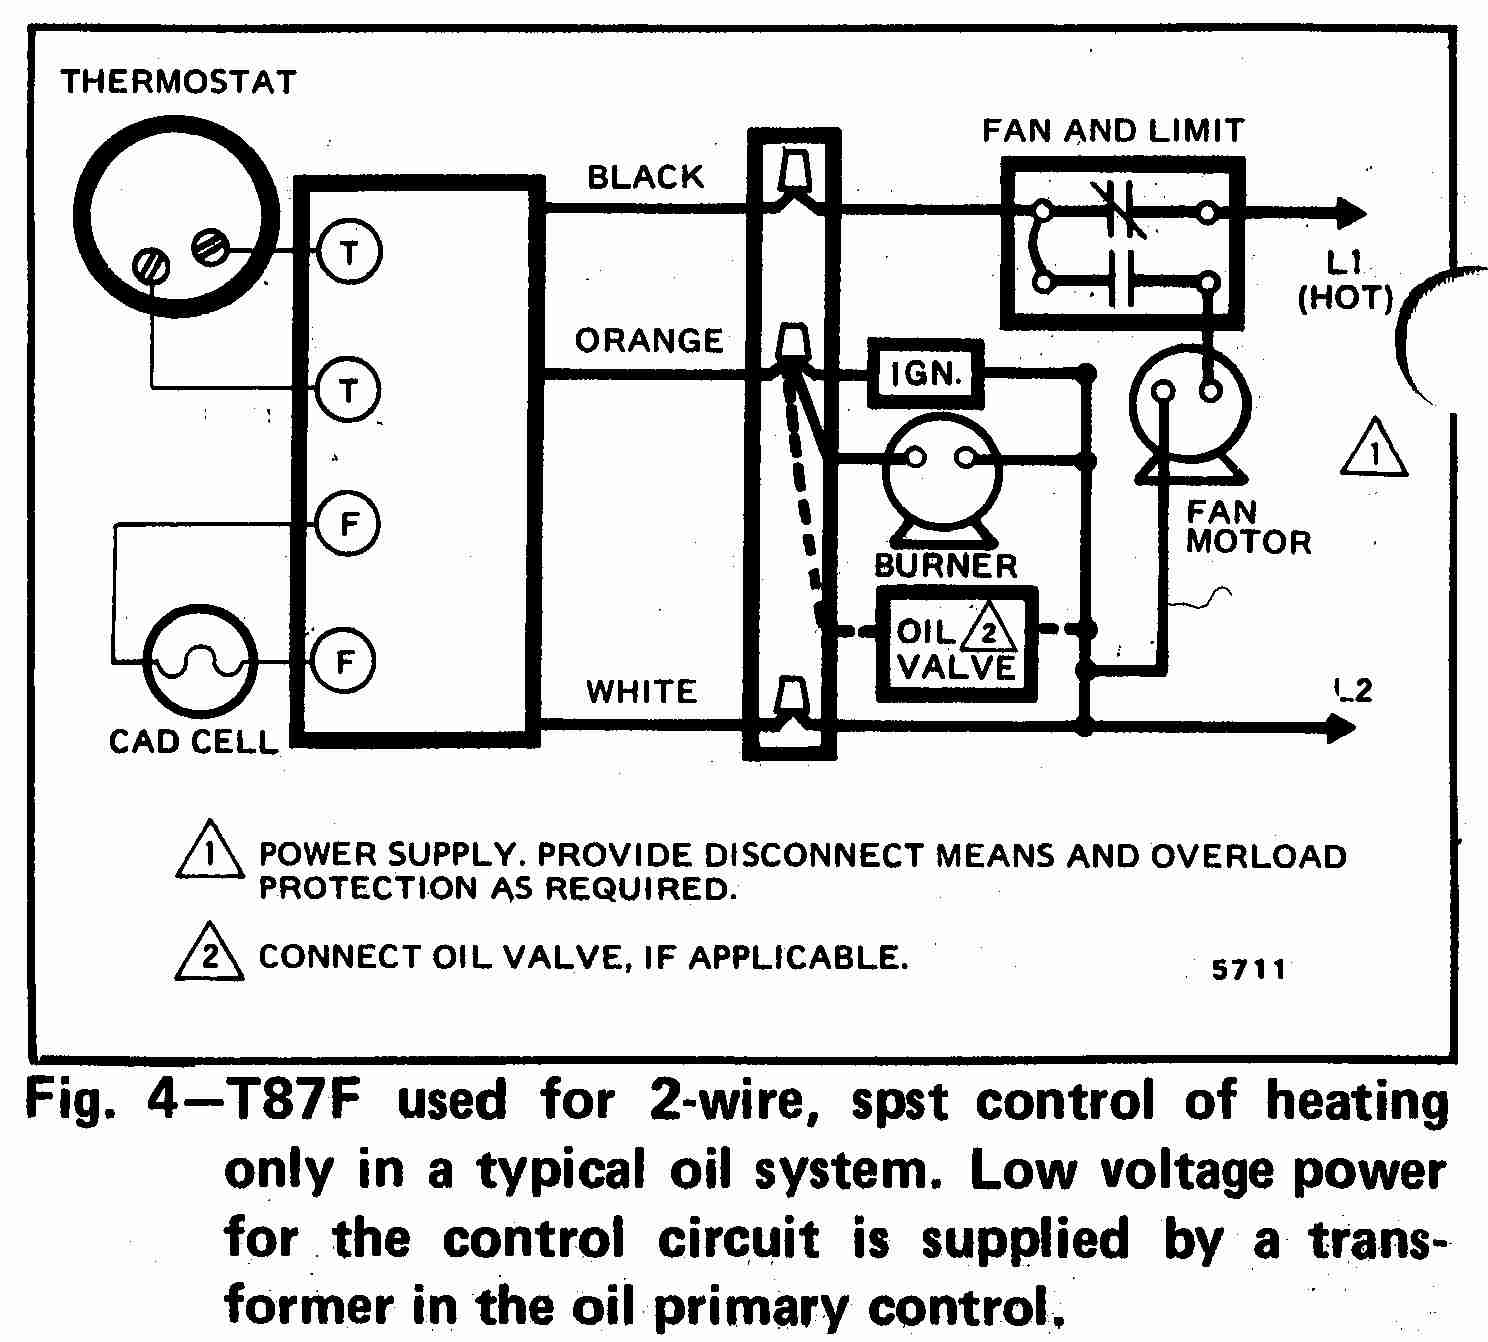 Wiring Diagram Hvac Free For You Diagrams Units Room Thermostat Systems Rh Inspectapedia Com Capacitor